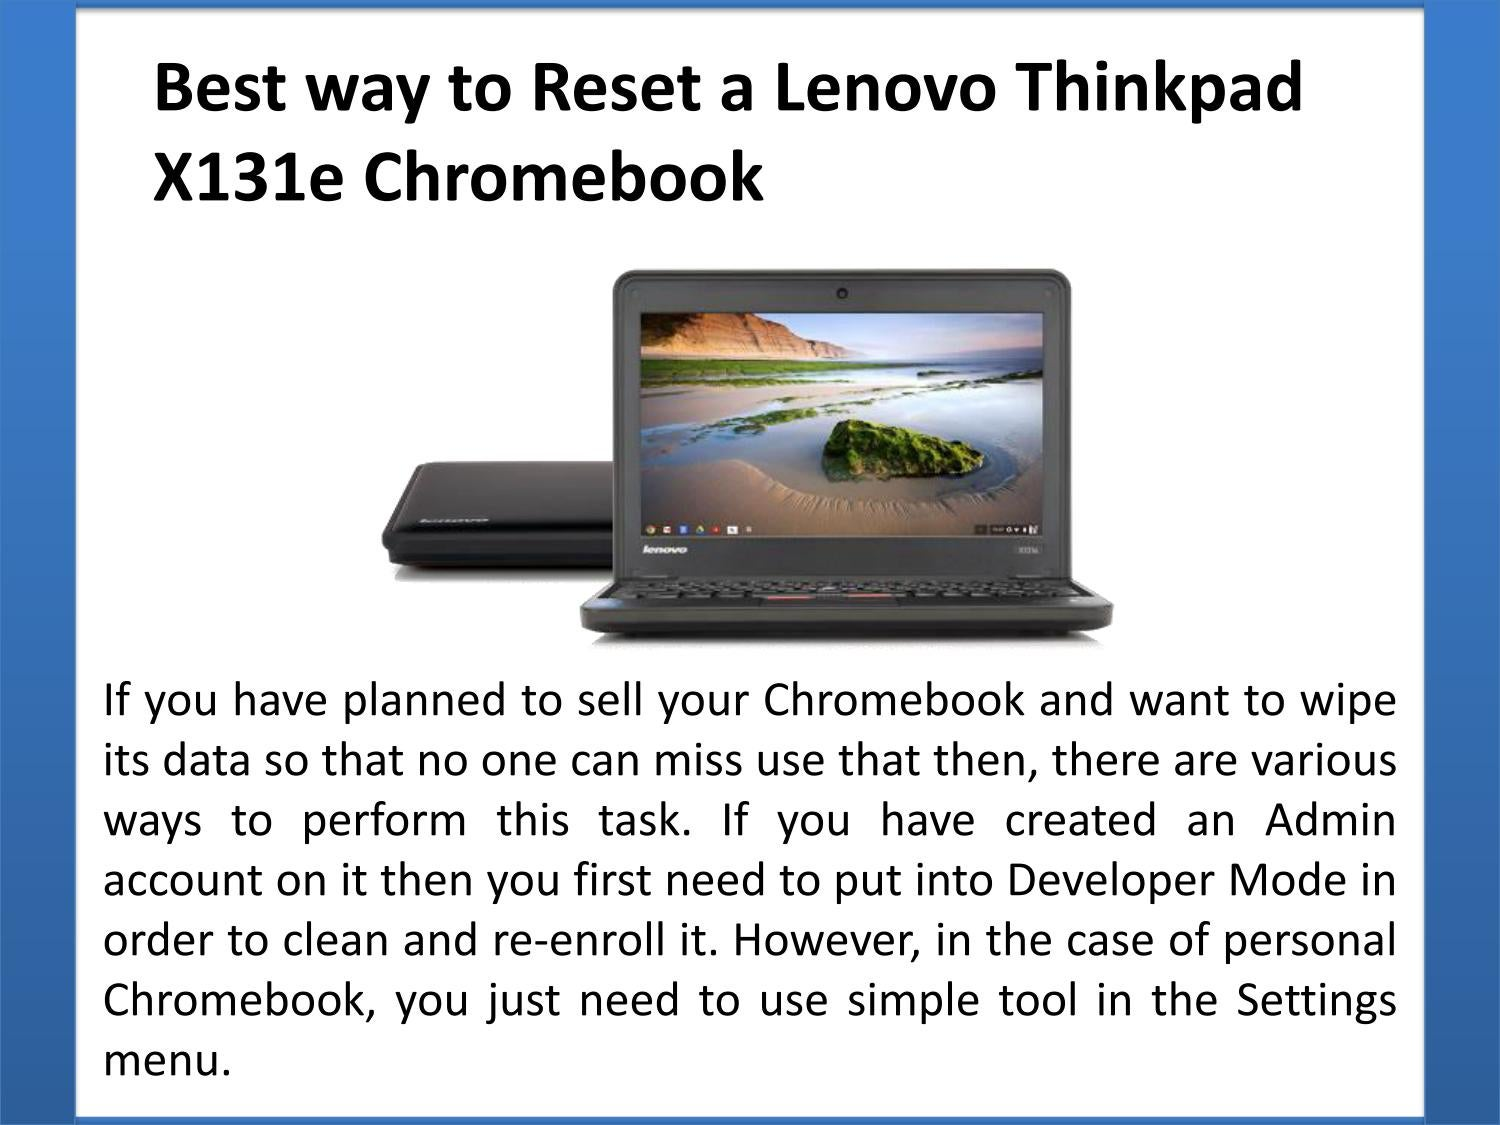 Best way to Reset a Lenovo Thinkpad X131e Chromebook by